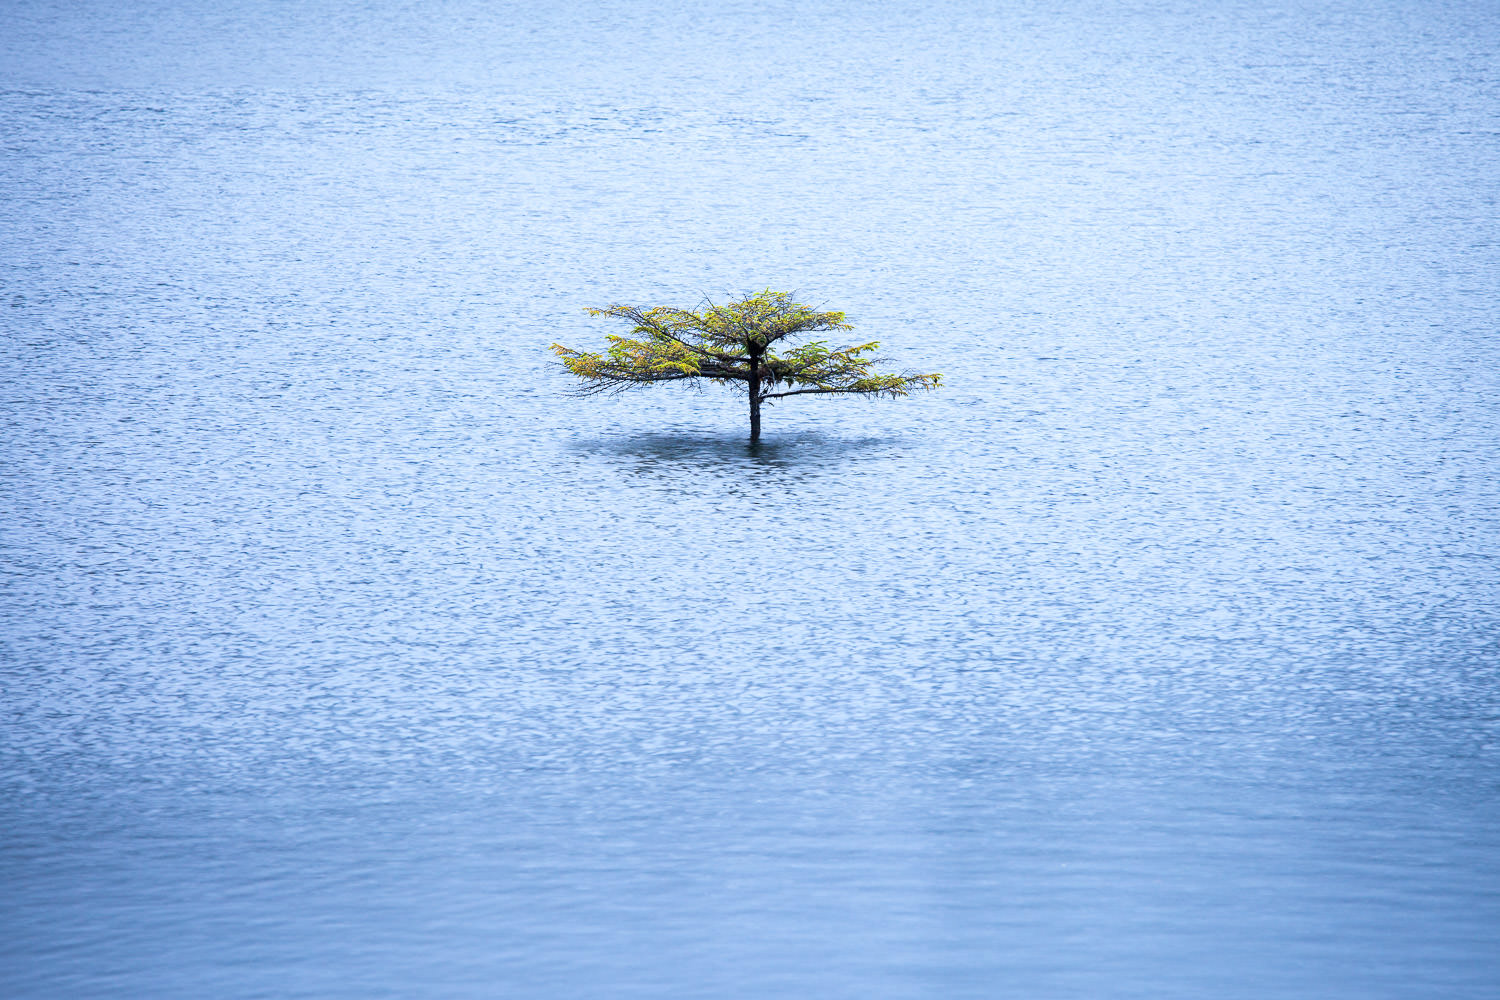 The little bonsai tree growing out of sunken log at Fairy Lake must be one of the most recognizable and photographed trees on Vancouver Island. That only makes for a fun challenge though, to see how you might capture it in new and unique ways. Since the lake is connected to the nearby San Juan River, water levels can rise dramatically during periods of heavy rain. When they did just this fall, it left only part of the tree poking through the lake's surface. At times, the entire tree can become submerged. How it lives through all of this I am not quite sure, but I'm sure happy that it does.  Canon 5D MK2   70-200 f/4L IS lens   1/4 sec   f/6.3   ISO 200.